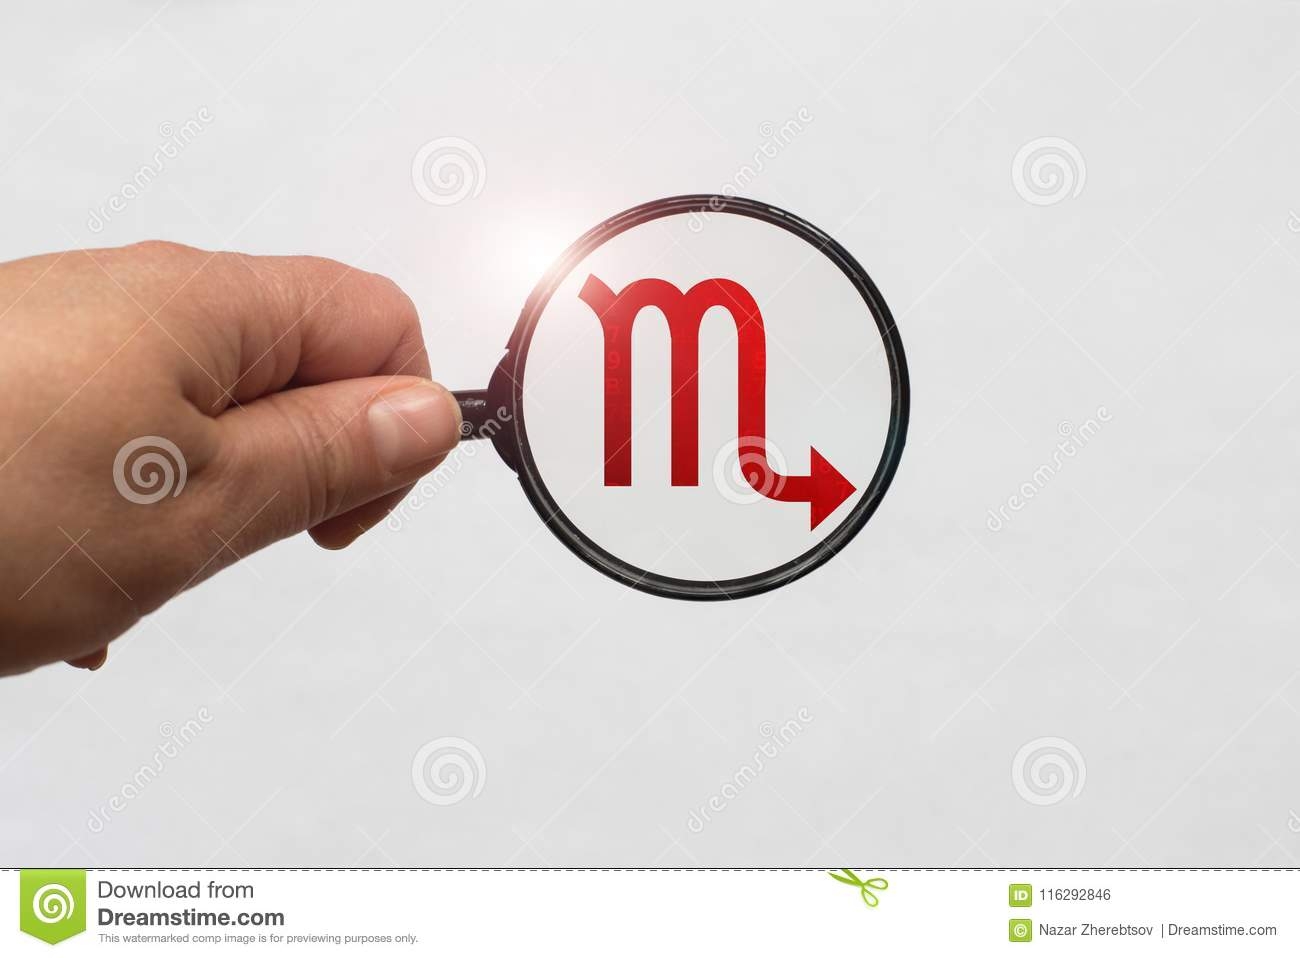 Illustration Of A Magnifying Glass Focusing On The Red Scorpio